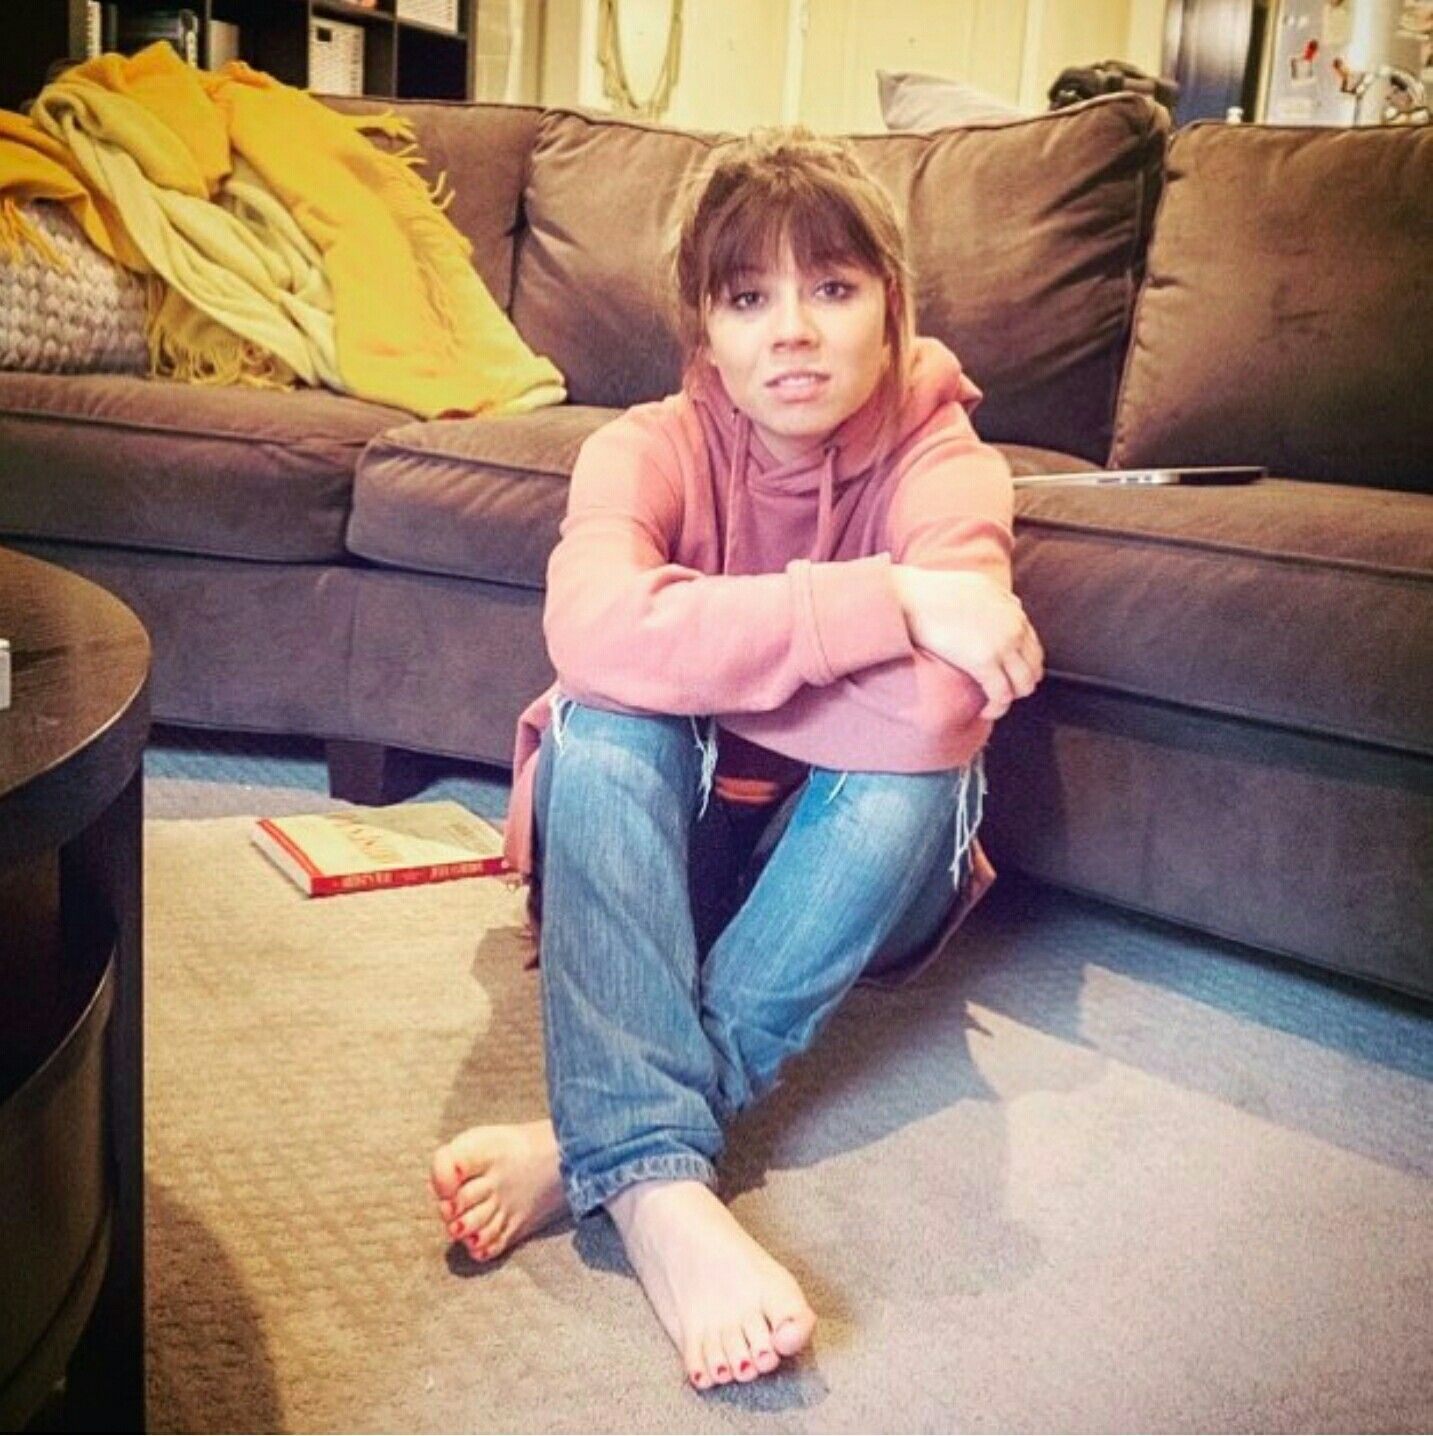 Feet Jennette McCurdy naked (89 photos), Pussy, Is a cute, Instagram, legs 2019